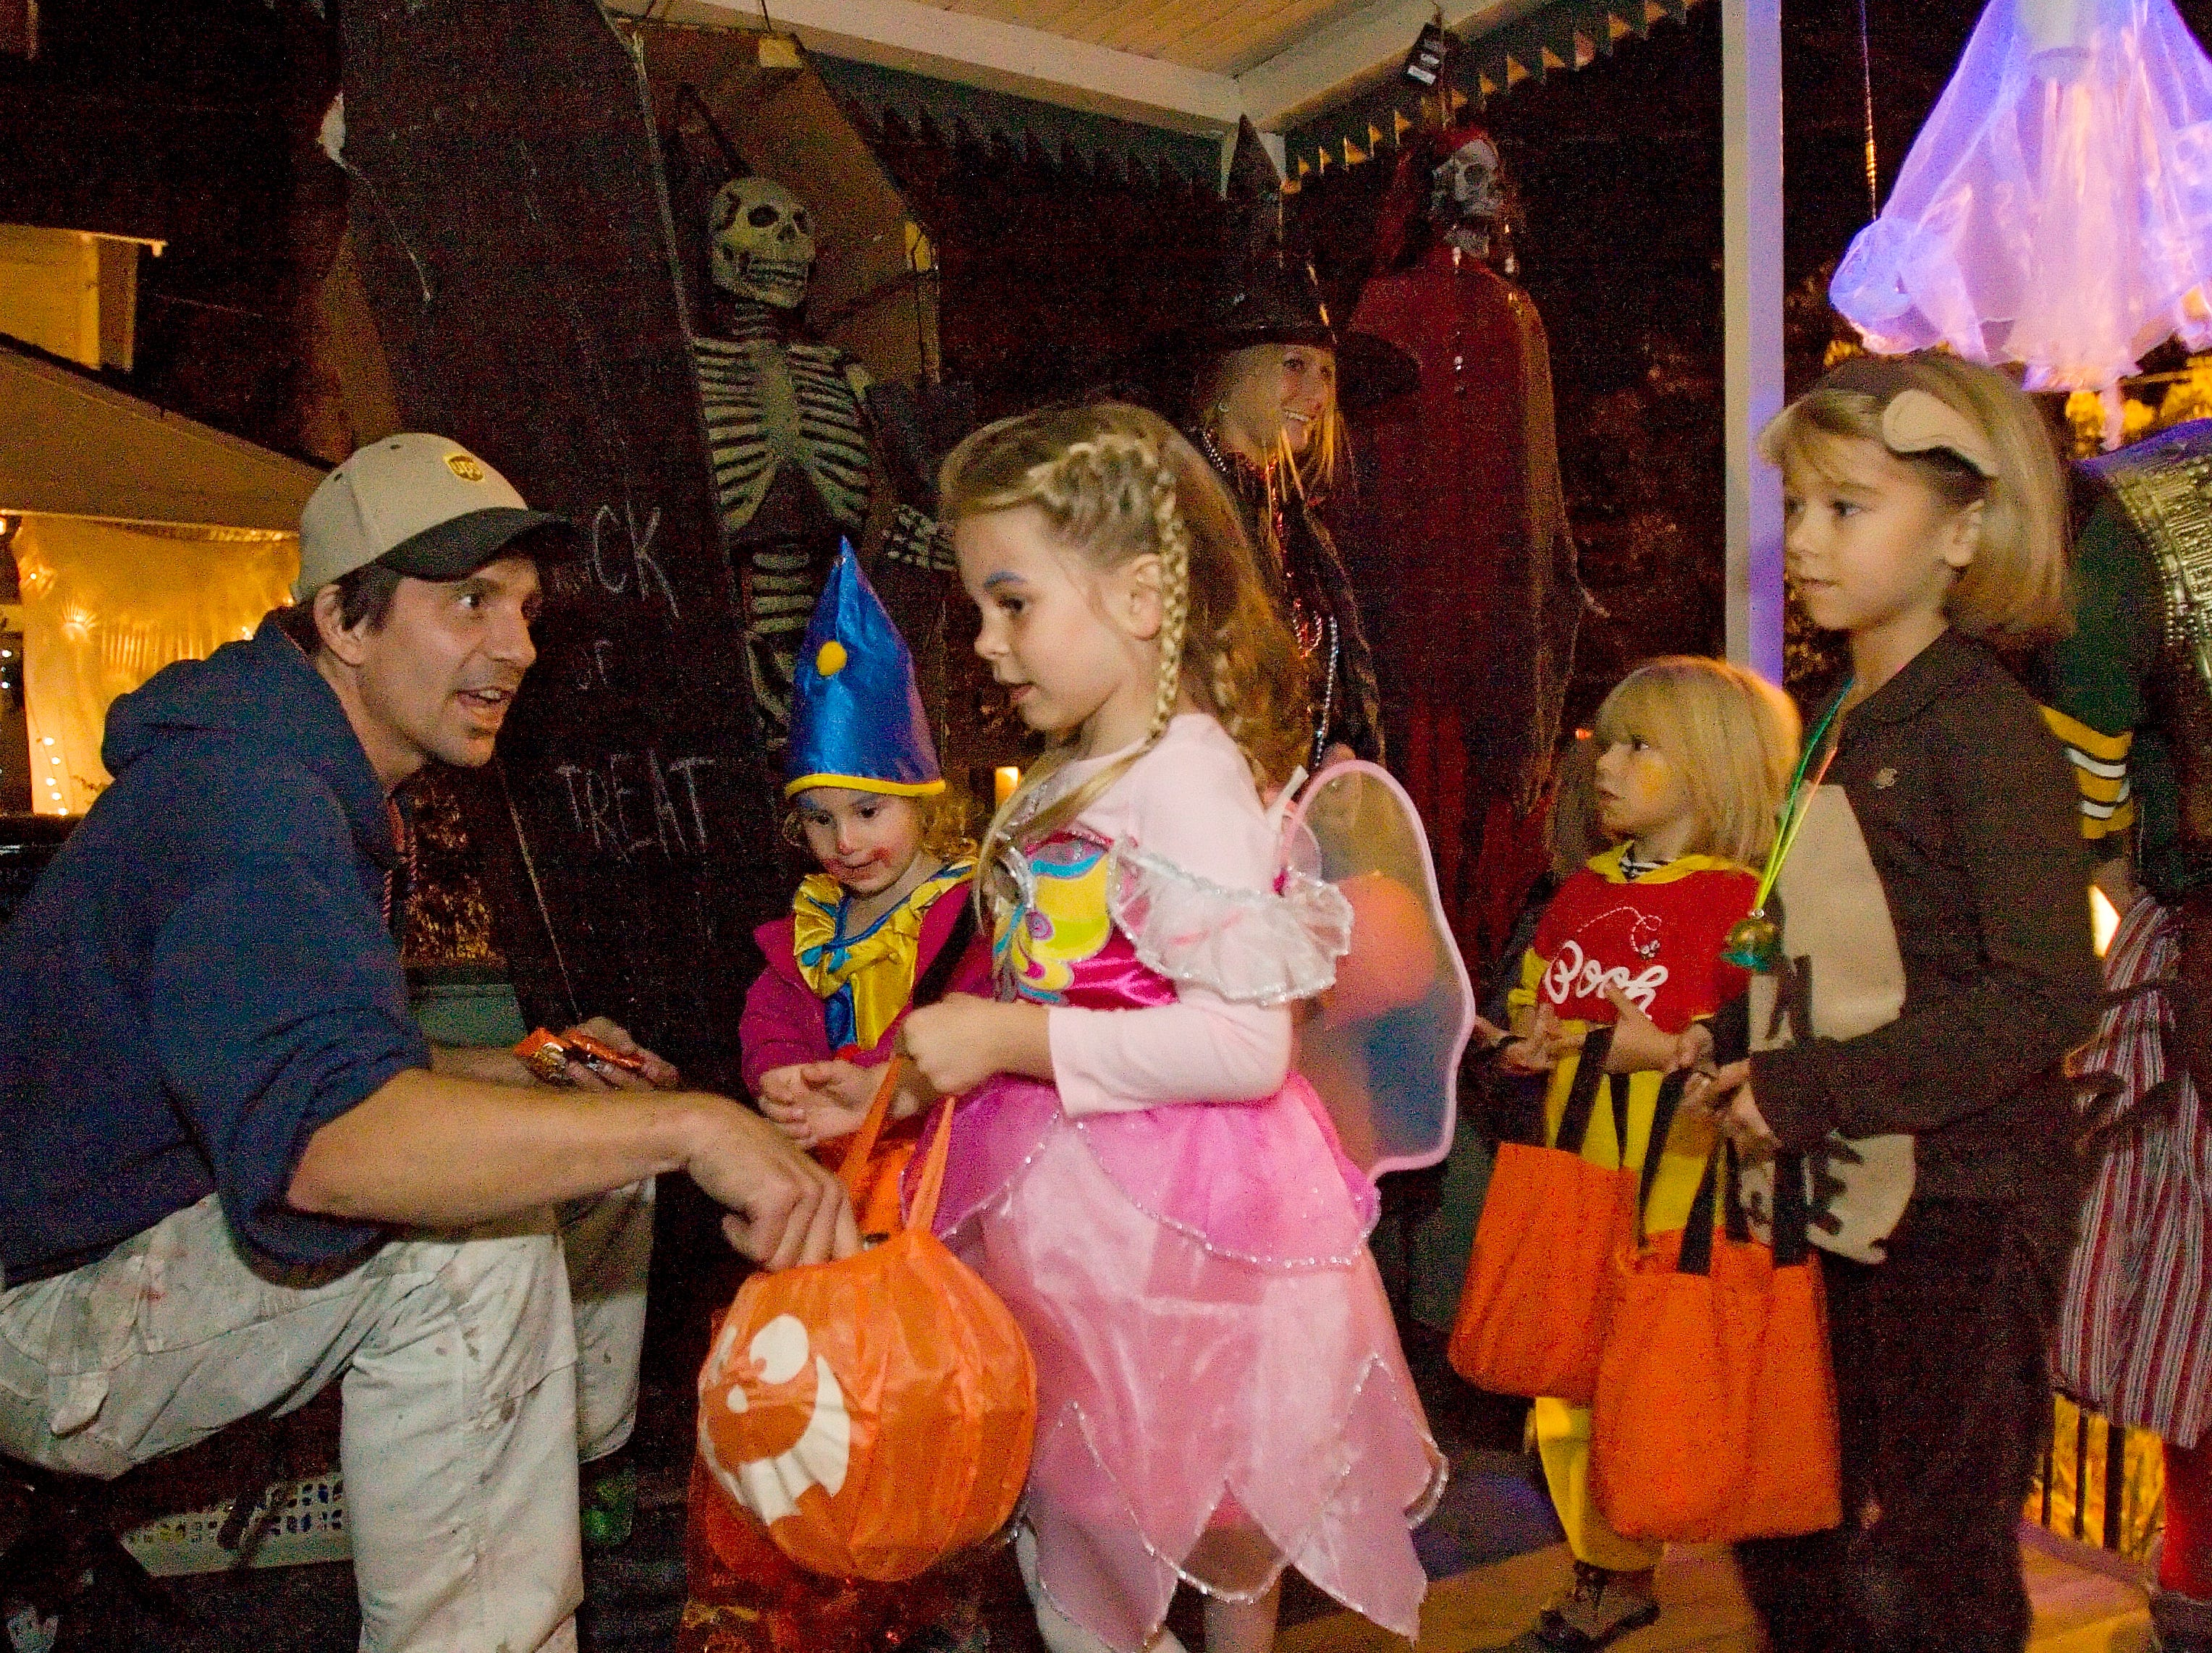 2007: Steele Steffy, left, hands out Halloween candy on his elaborately decorated front porch Wednesday night on East Falls Street in Ithaca. From left are treat-or-treaters Sabine Zentner, receiving candy from Steffy, Miriam Bakija, Greta Cotraccia, and Sophia Cotraccia.